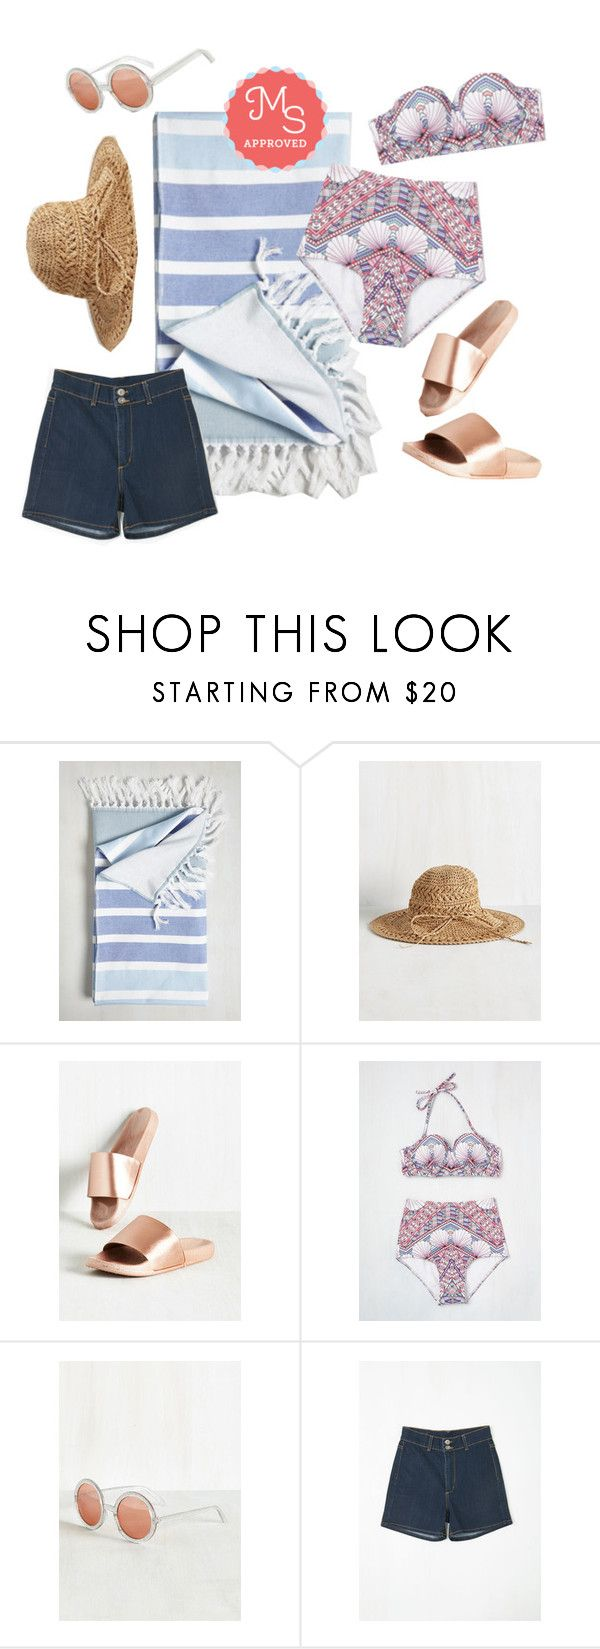 """""""Beachy as ABC Swimsuit Top in Deco"""" by modcloth ❤ liked on Polyvore featuring women's clothing, women, female, woman, misses, juniors, swimsuit, resortwear, modcloth and modstylist"""